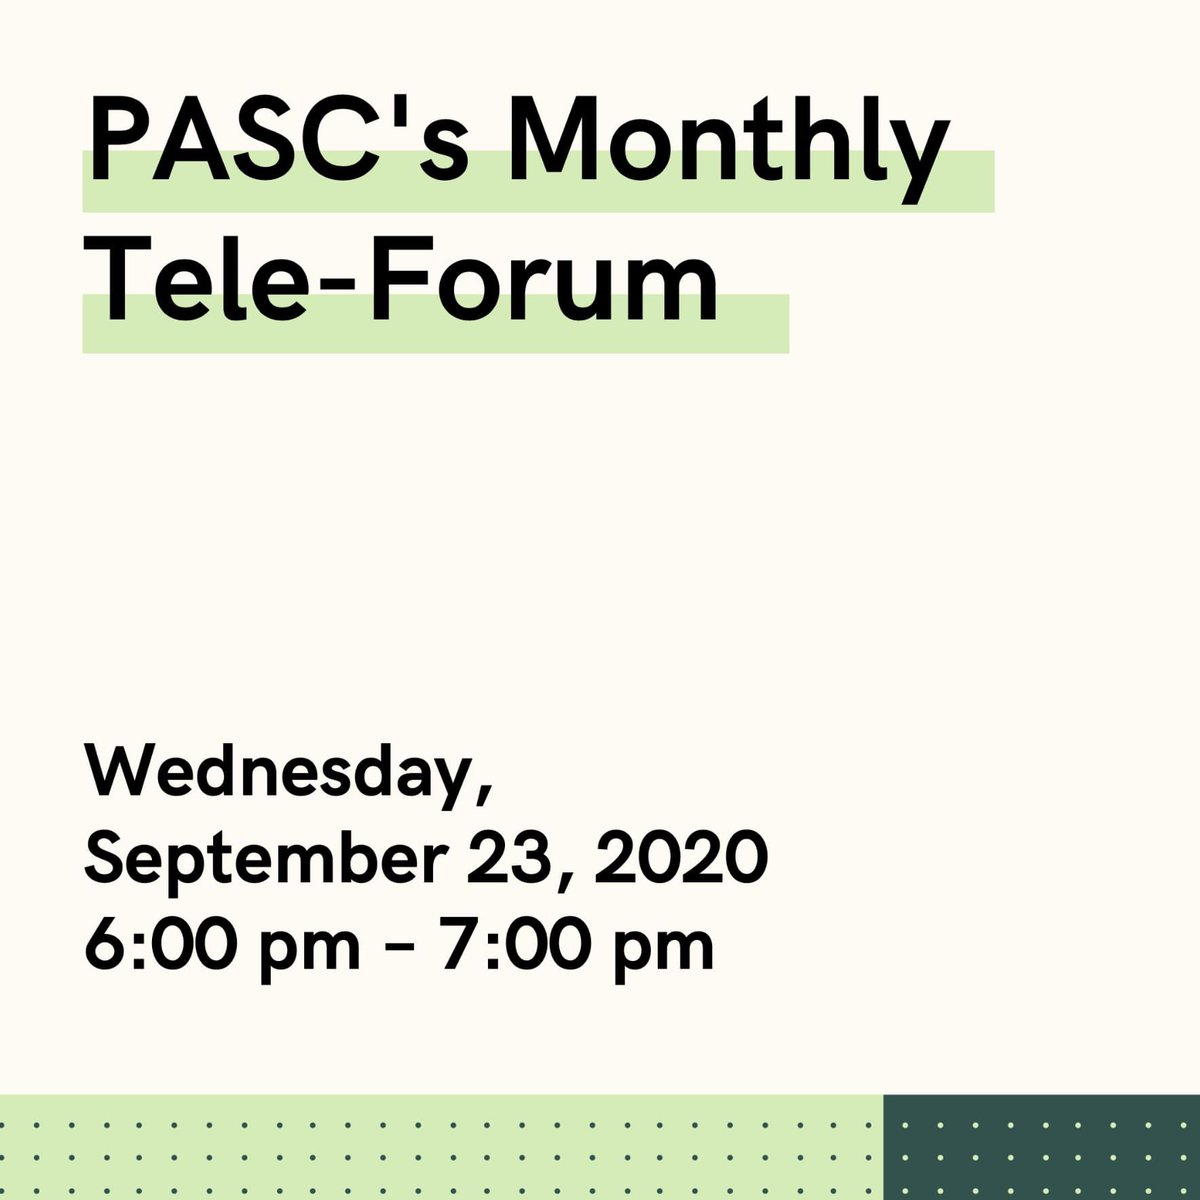 Join us for a discussion with Dr Jeffrey Gunzenhouser from the LA County Department of Public Health for a COVID-19 update.  Join by: Dial 877-229-8493  use i.d. code 111563 https://t.co/Nqr5eQCJrI  #pasc #pascla #ihss #consumers #providers #losangeles #LACounty https://t.co/Oo6Gj3mhOz